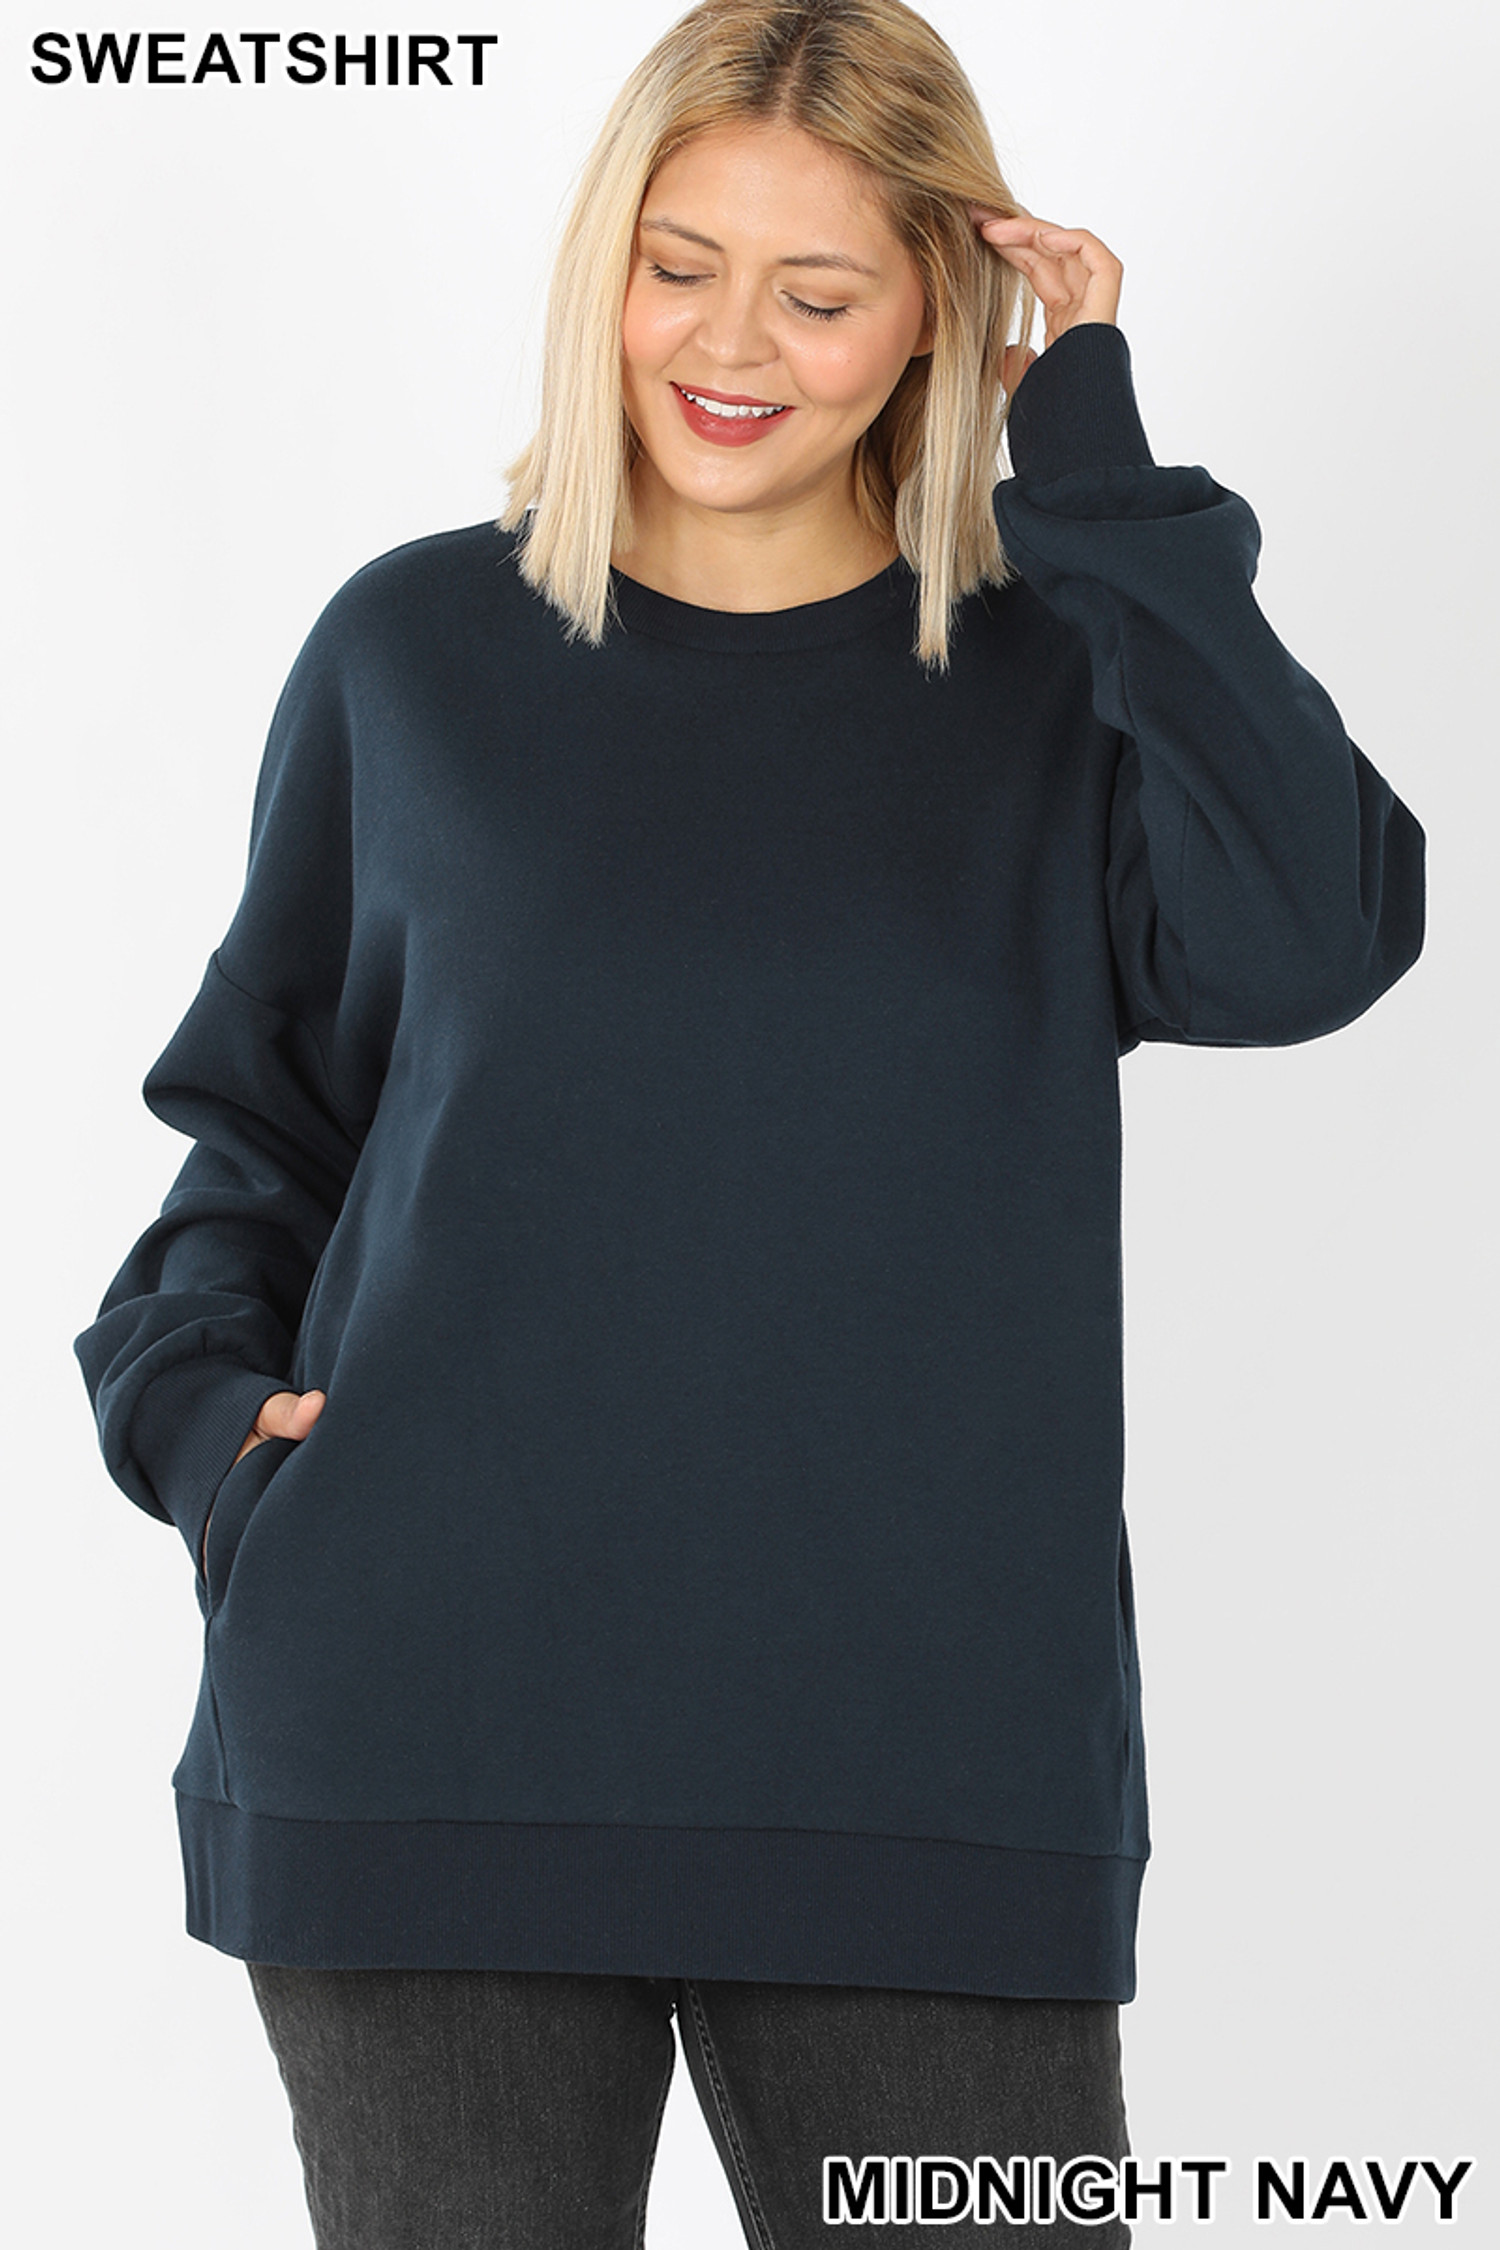 Front image of Midnight Navy Cotton Round Crew Neck Plus Size Sweatshirt with Side Pockets